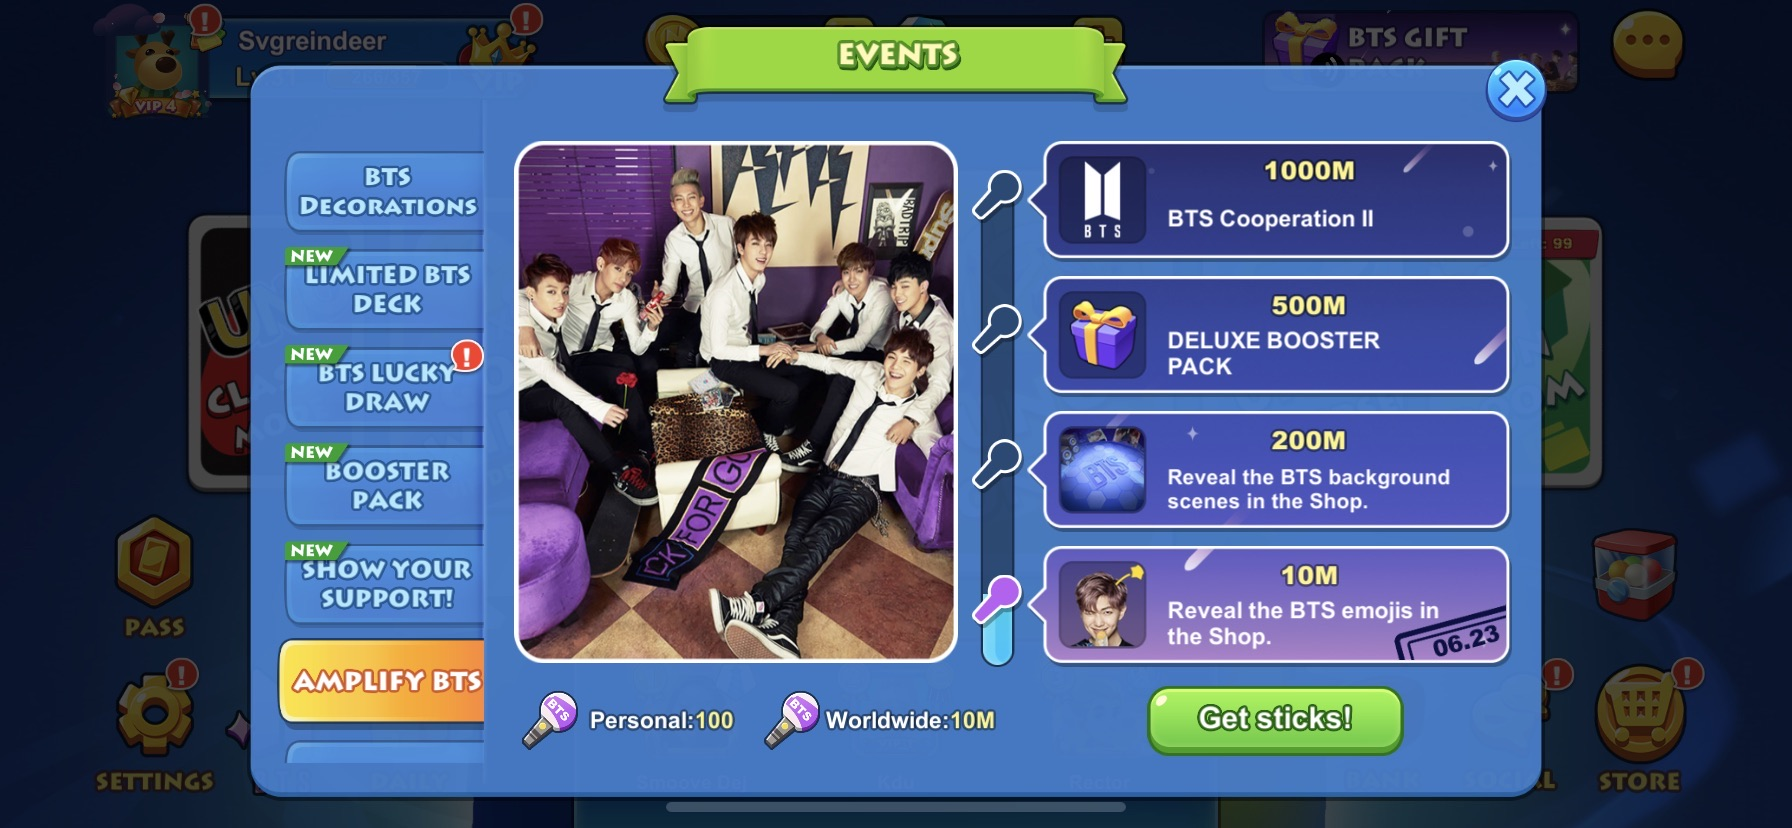 Bts Take Over Uno Mobile Game And Donate To Crew Nation